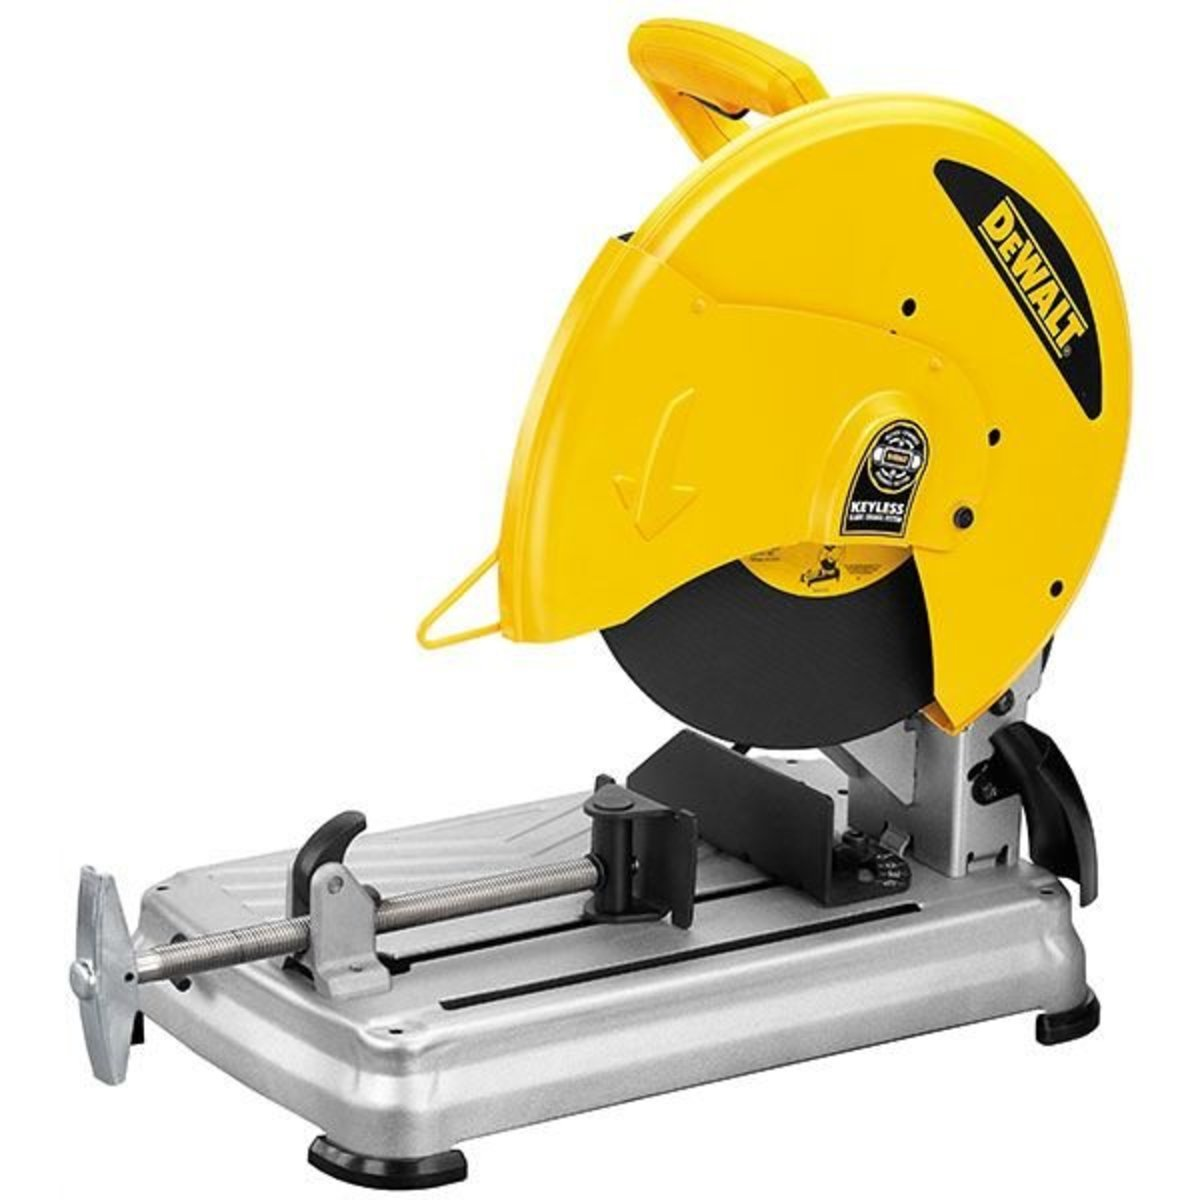 14 chop saw with quik change keyless blade change system model d28715 view a larger image of 14 chop saw with quik change keyless blade change dewalt d28715 greentooth Gallery